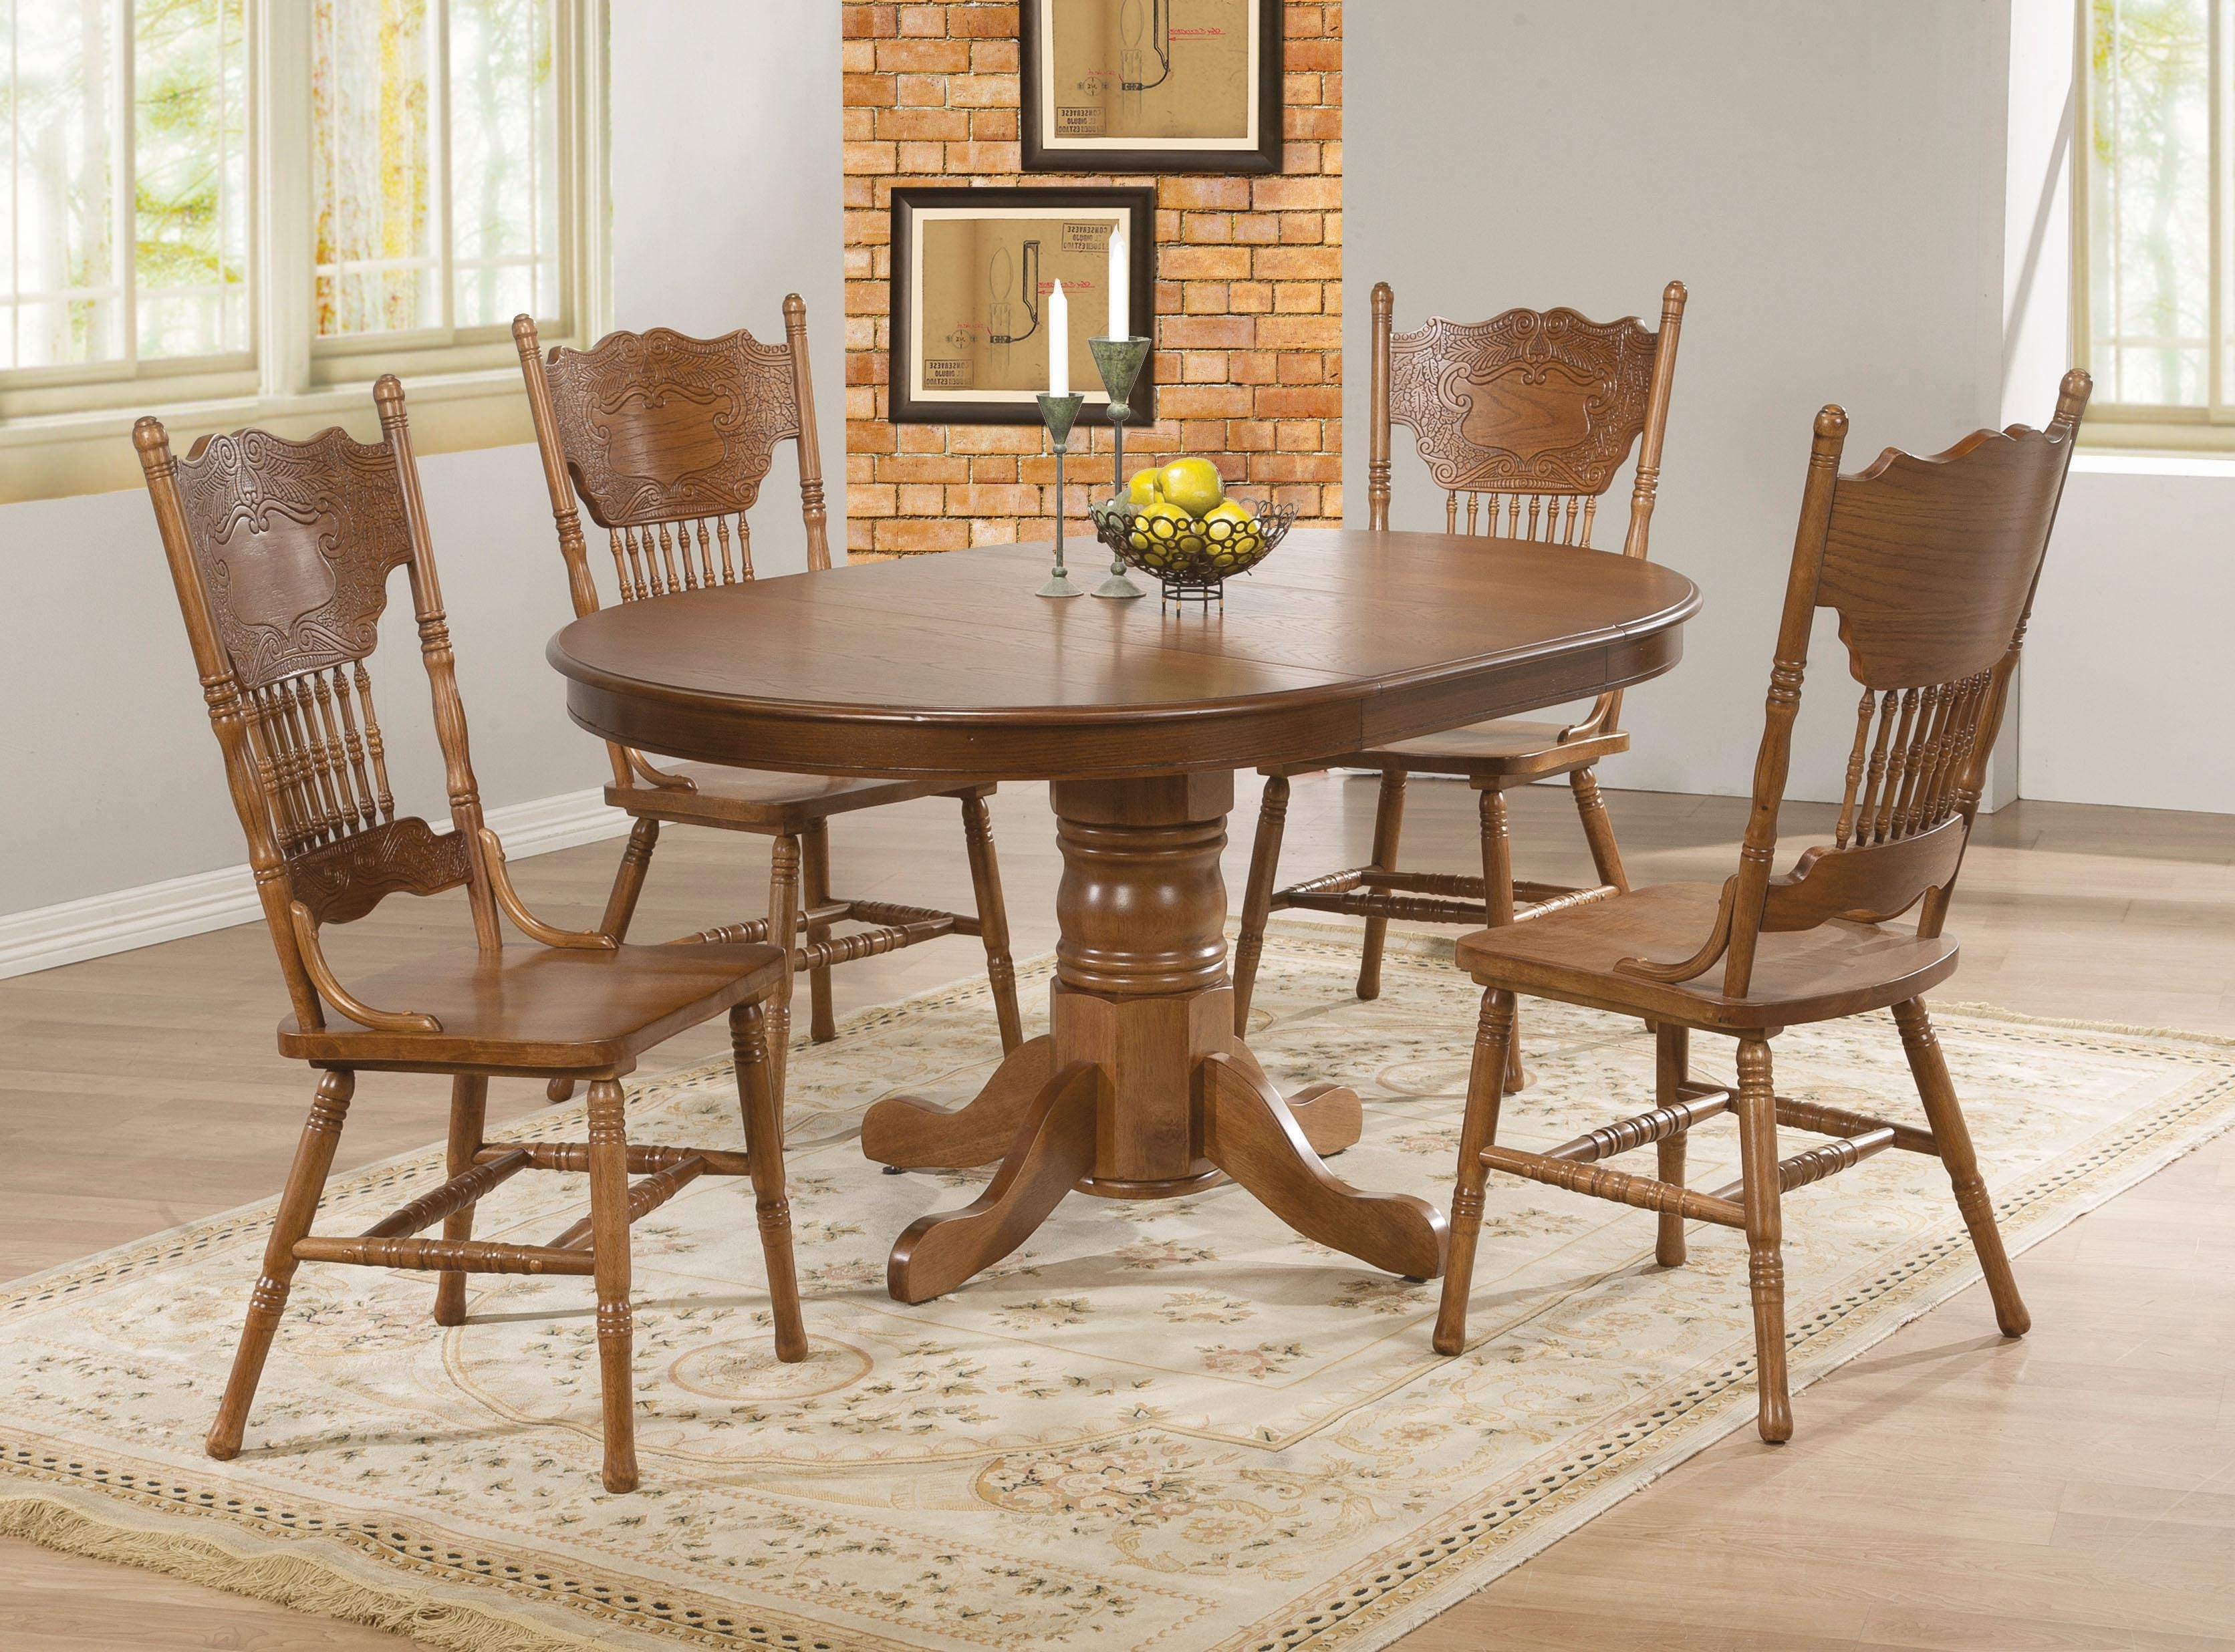 Latest Oak Round Dining Tables And Chairs Throughout Round Dining Table Htm Oak Oval Dining Table And Chairs As Glass (View 11 of 25)